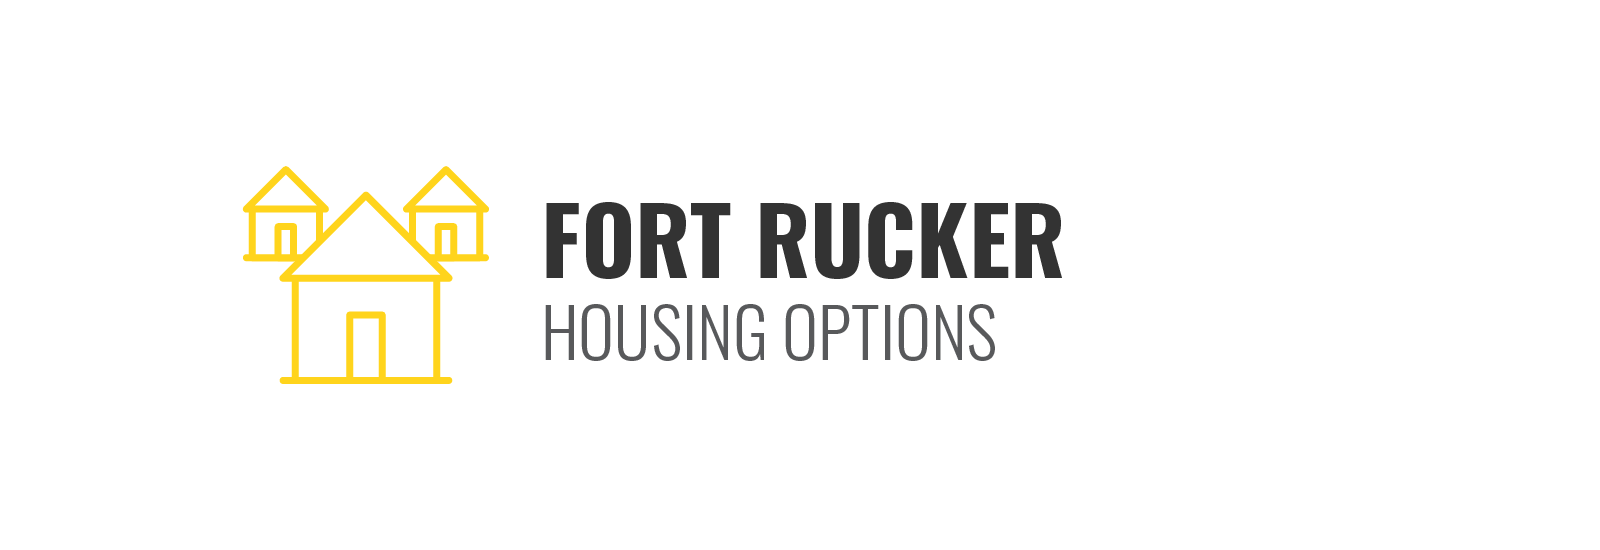 Fort Rucker Housing Options